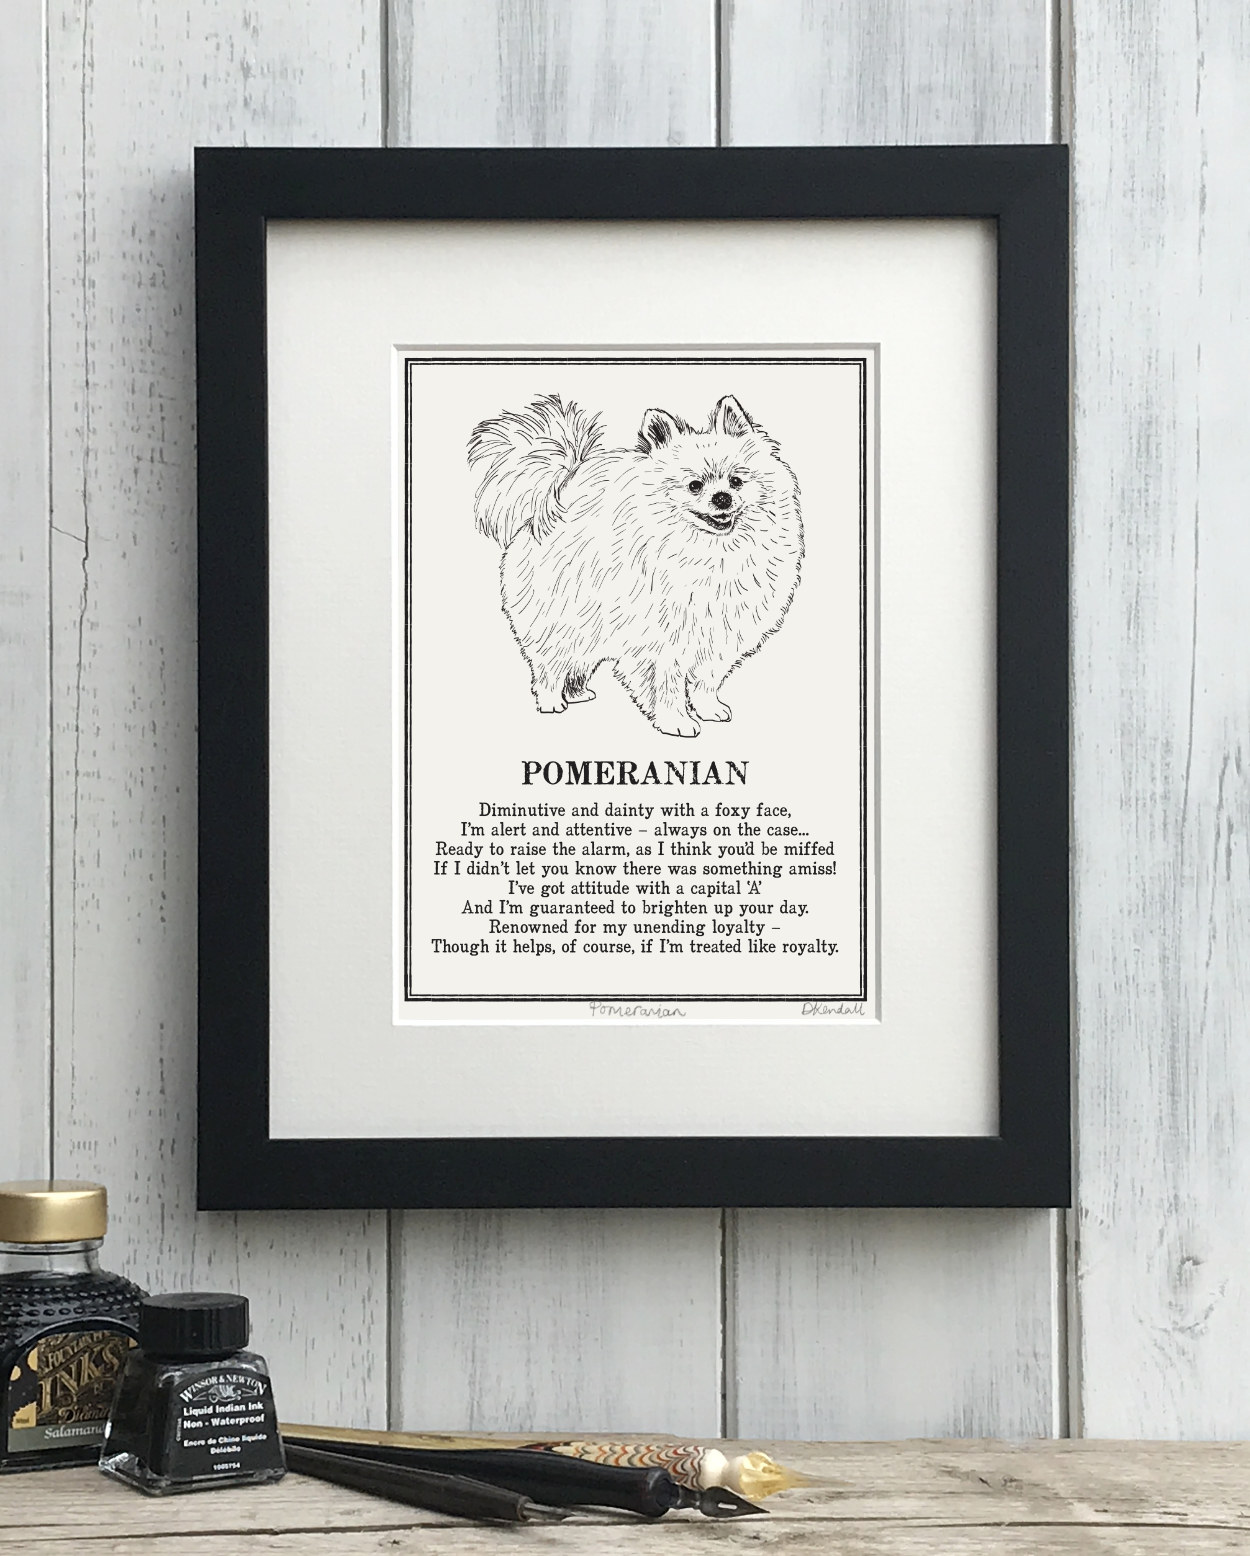 Pomeranian Doggerel Illustrated Poem Art Print | The Enlightened Hound